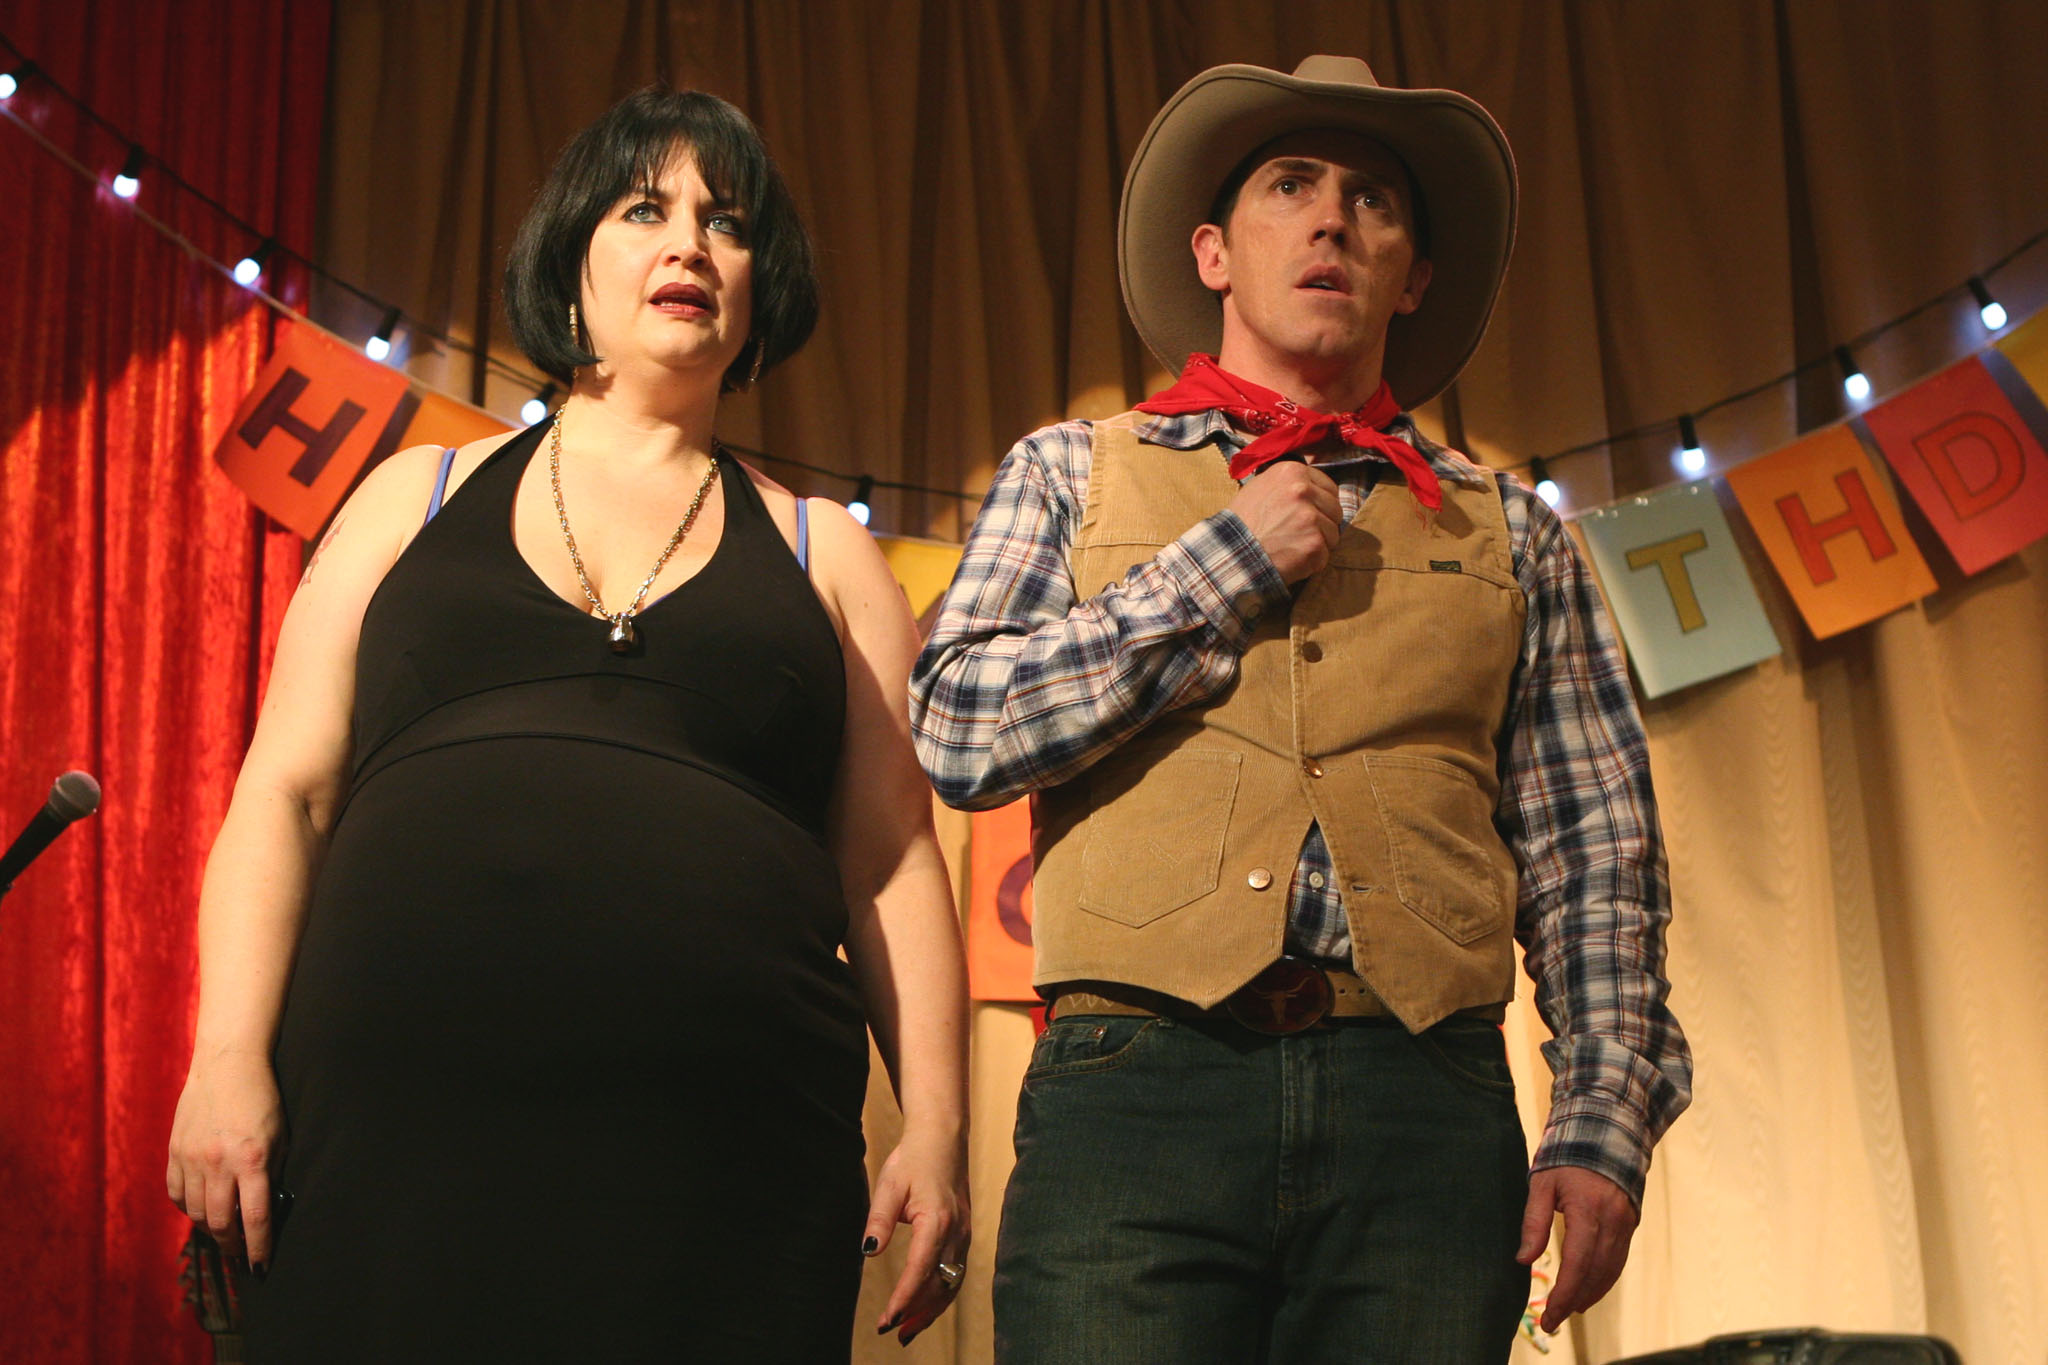 Ruth Jones as Nessa and Rob Brydon as Uncle Bryn in Gavin and Stacey